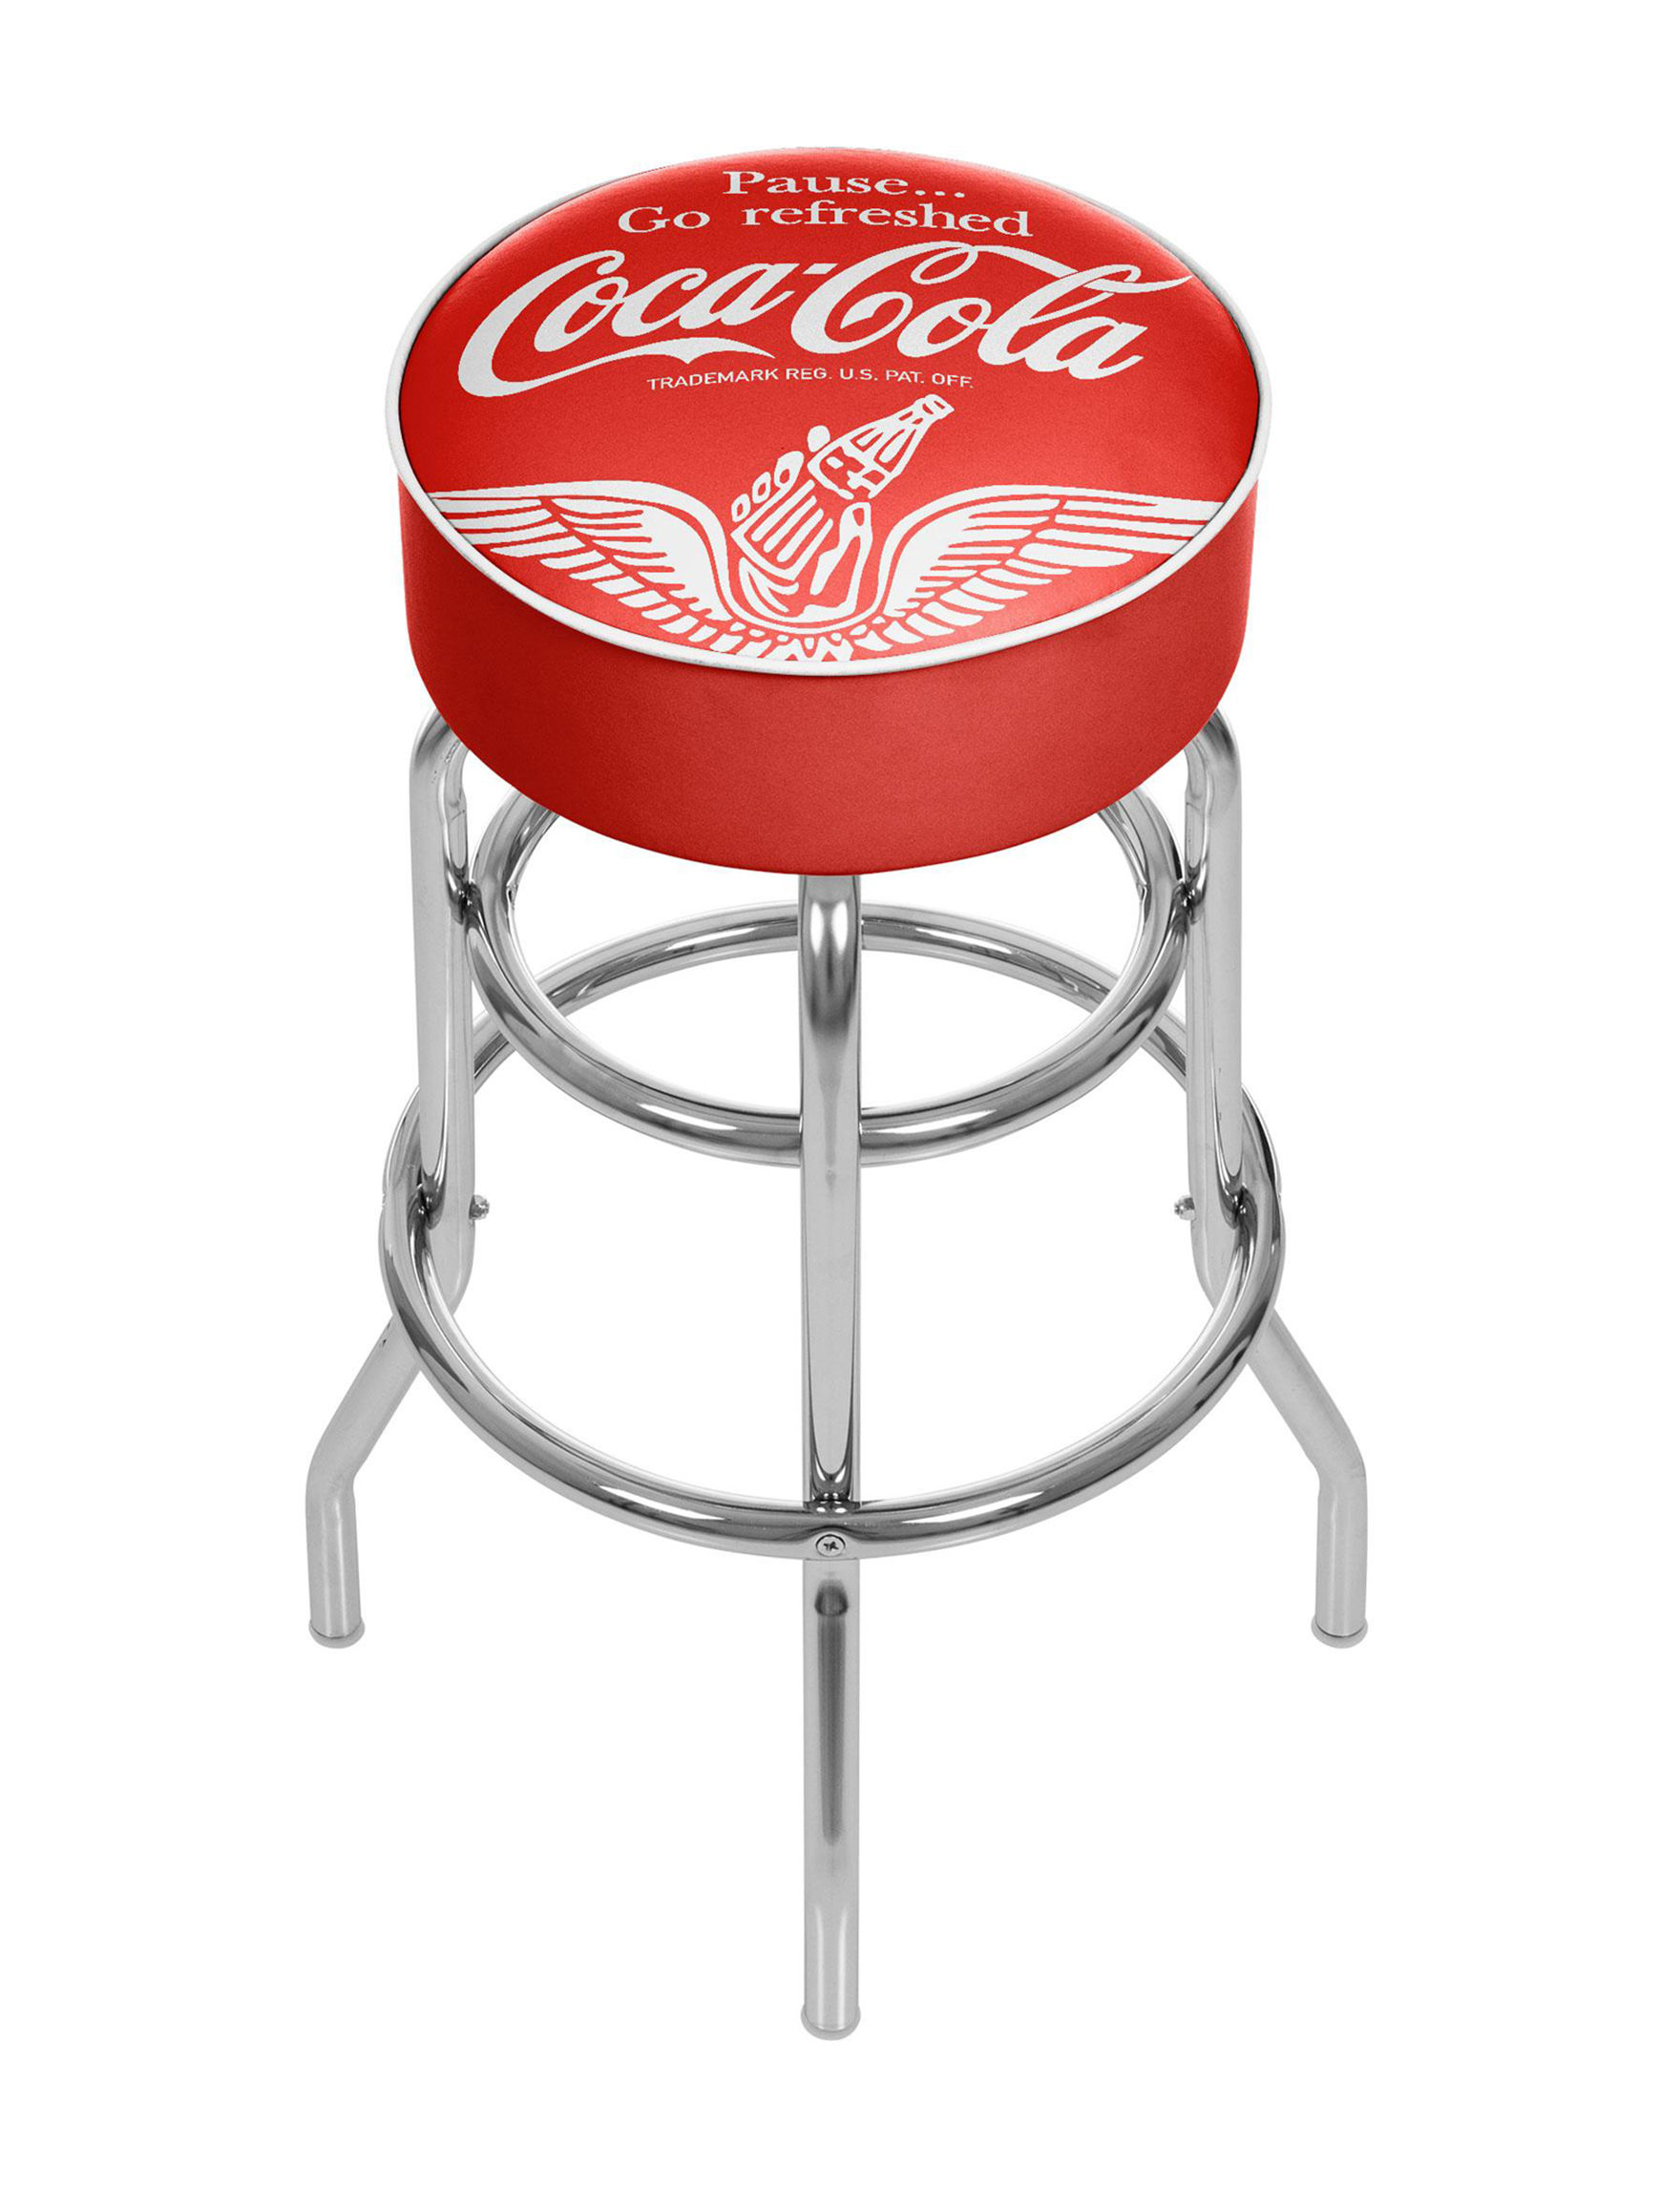 Coca Cola Red / White Bar & Kitchen Stools Kitchen & Dining Furniture